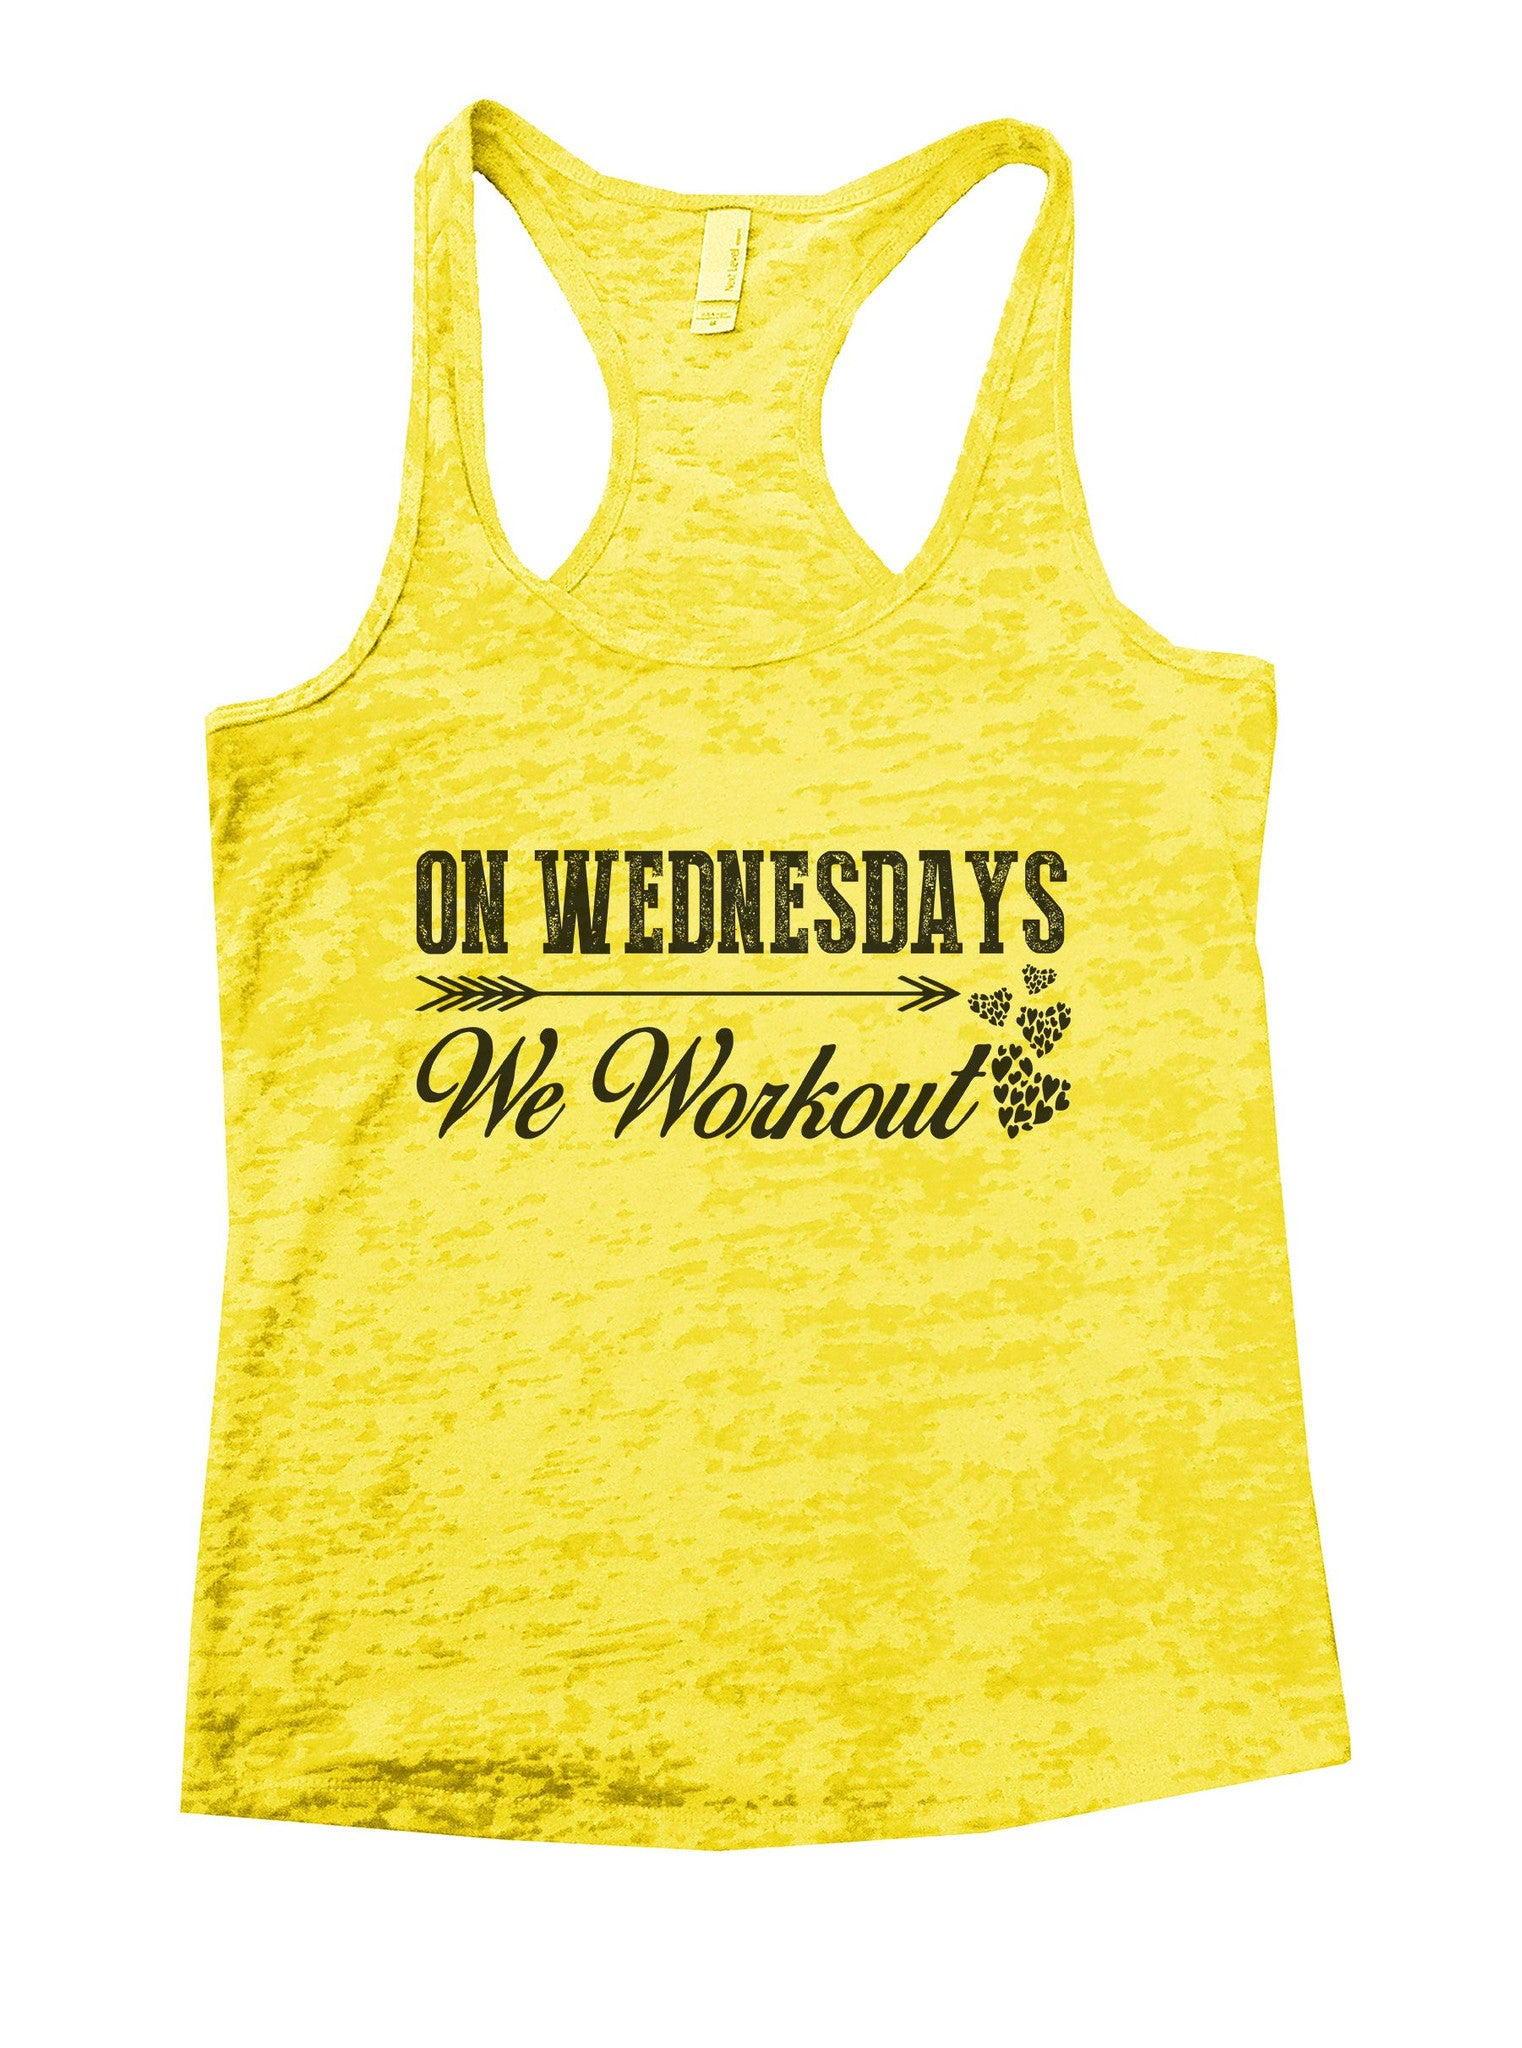 On Wednesdays We Workout Burnout Tank Top By BurnoutTankTops.com - 923 - Funny Shirts Tank Tops Burnouts and Triblends  - 7